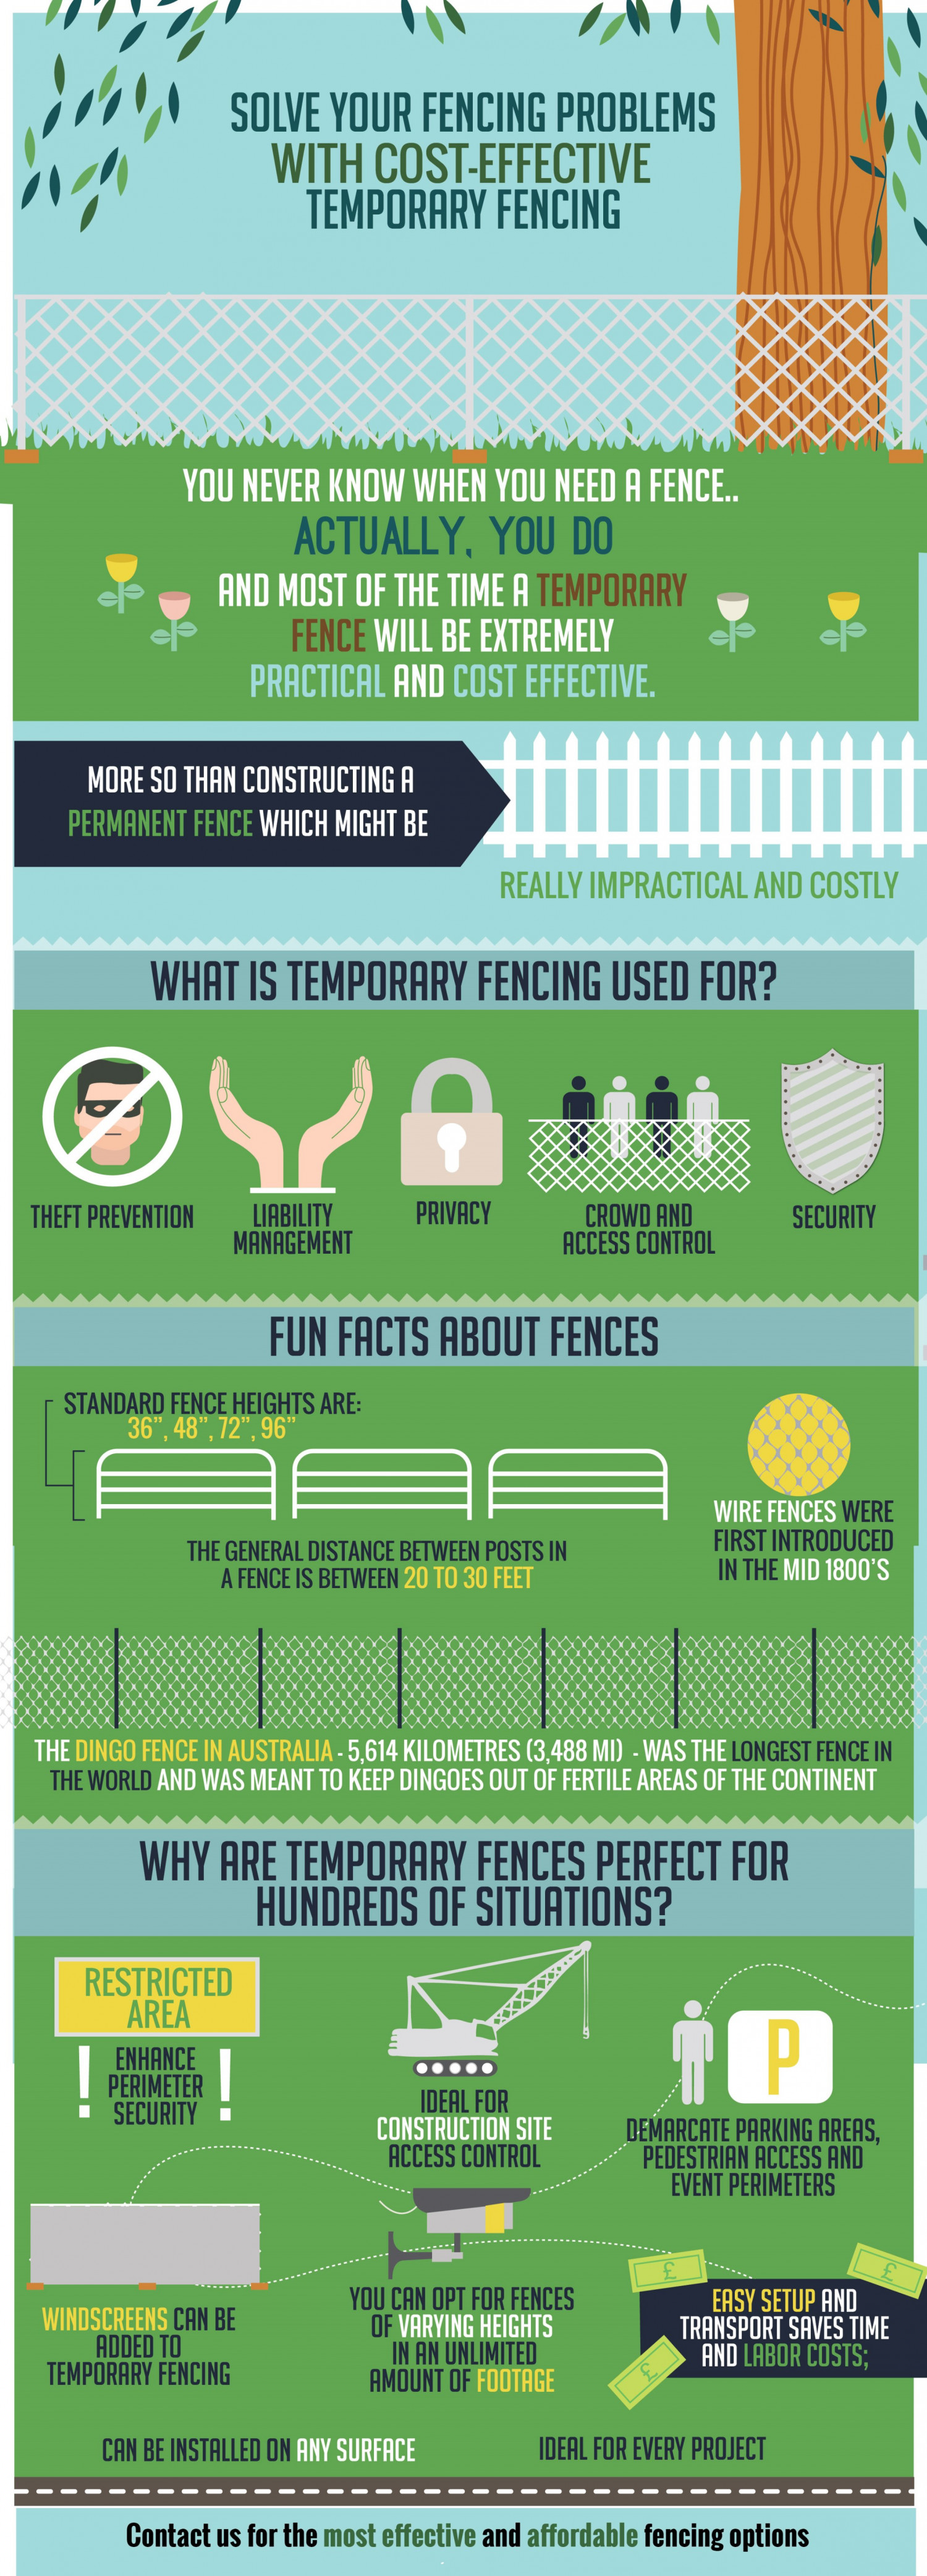 Solve Your Fencing Problems Infographic